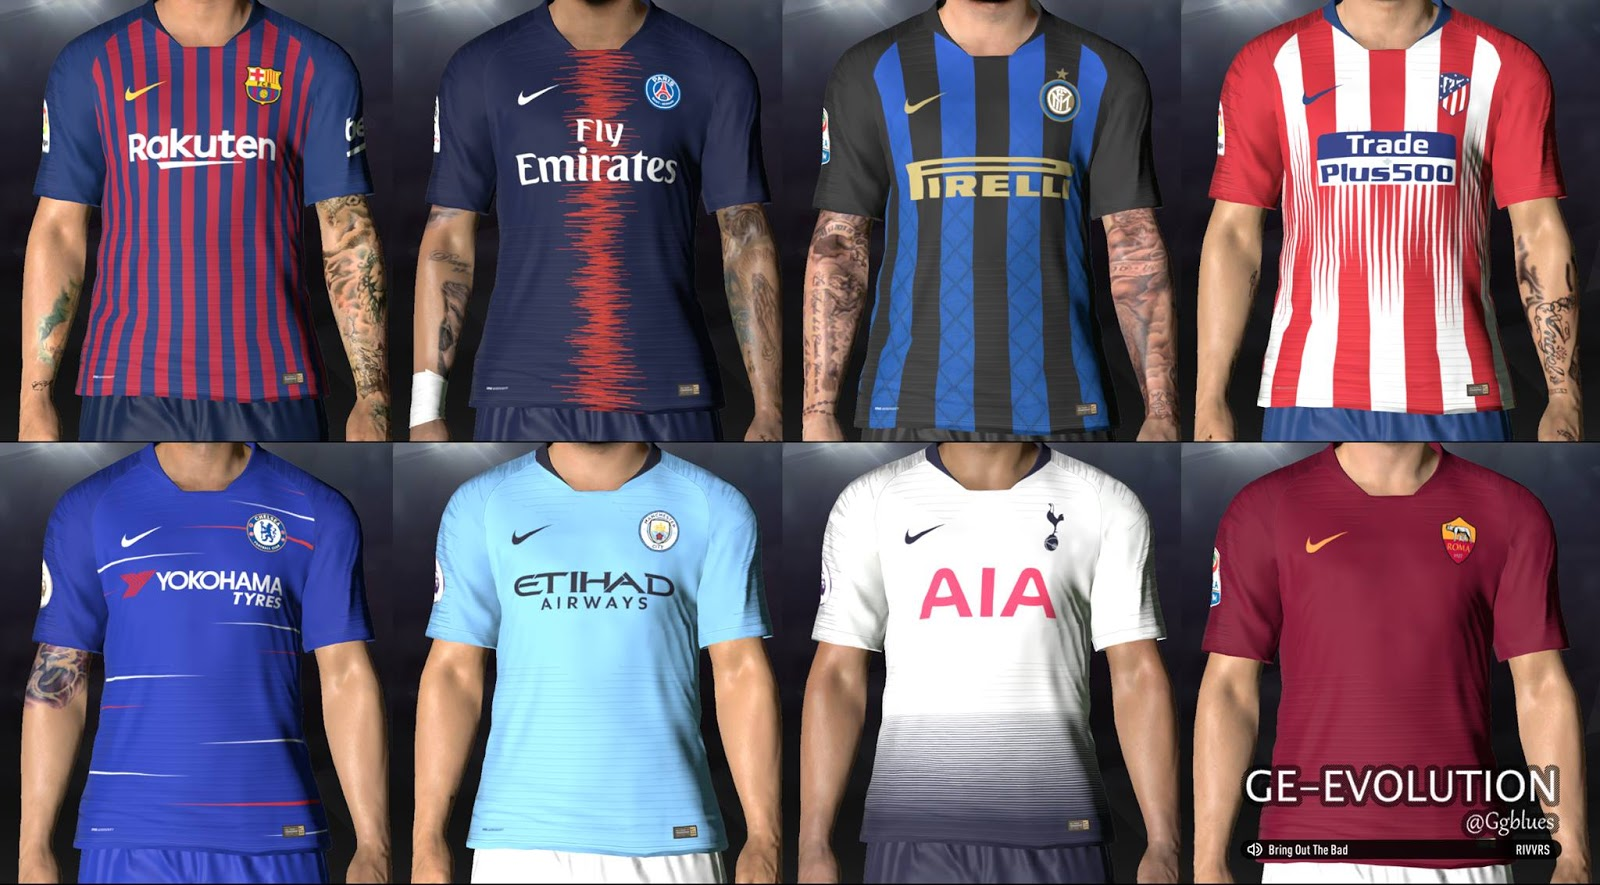 Pes-modif: Nike Home Kits 2018-19 Leaked For PES 2017 By